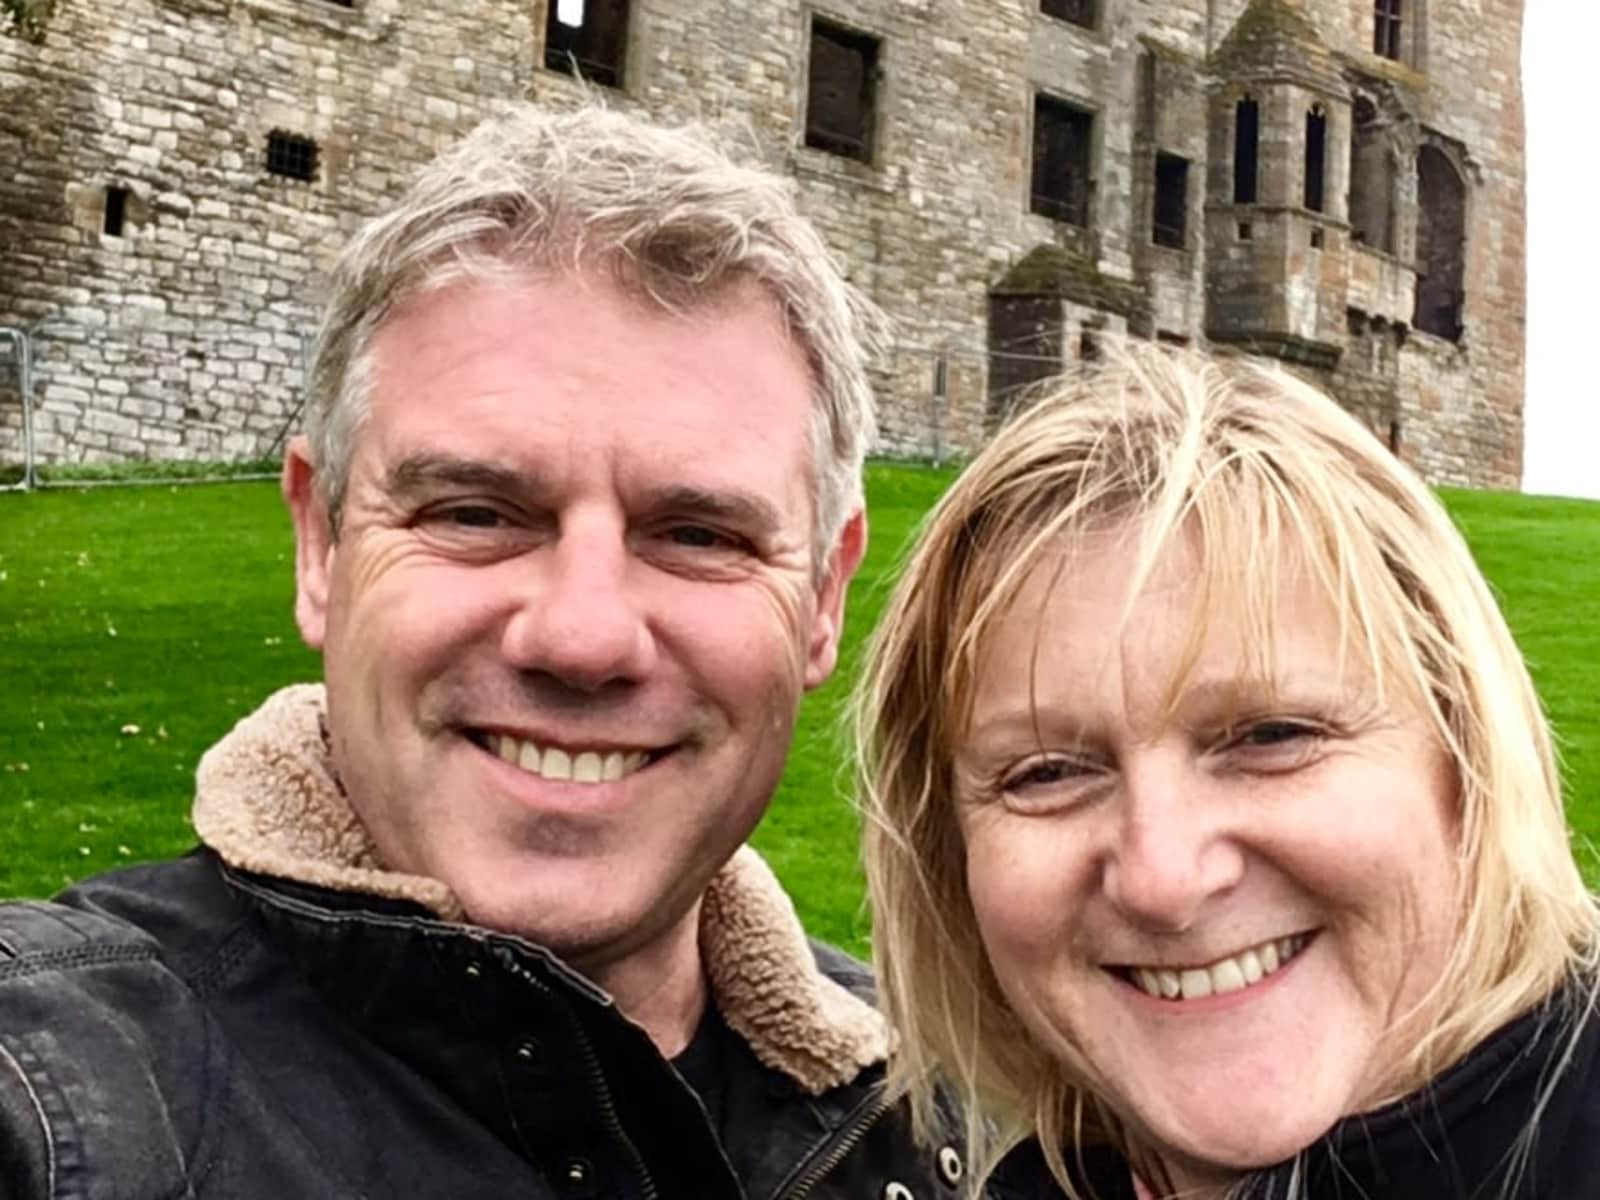 Mark & Jacqui from Oxford, United Kingdom